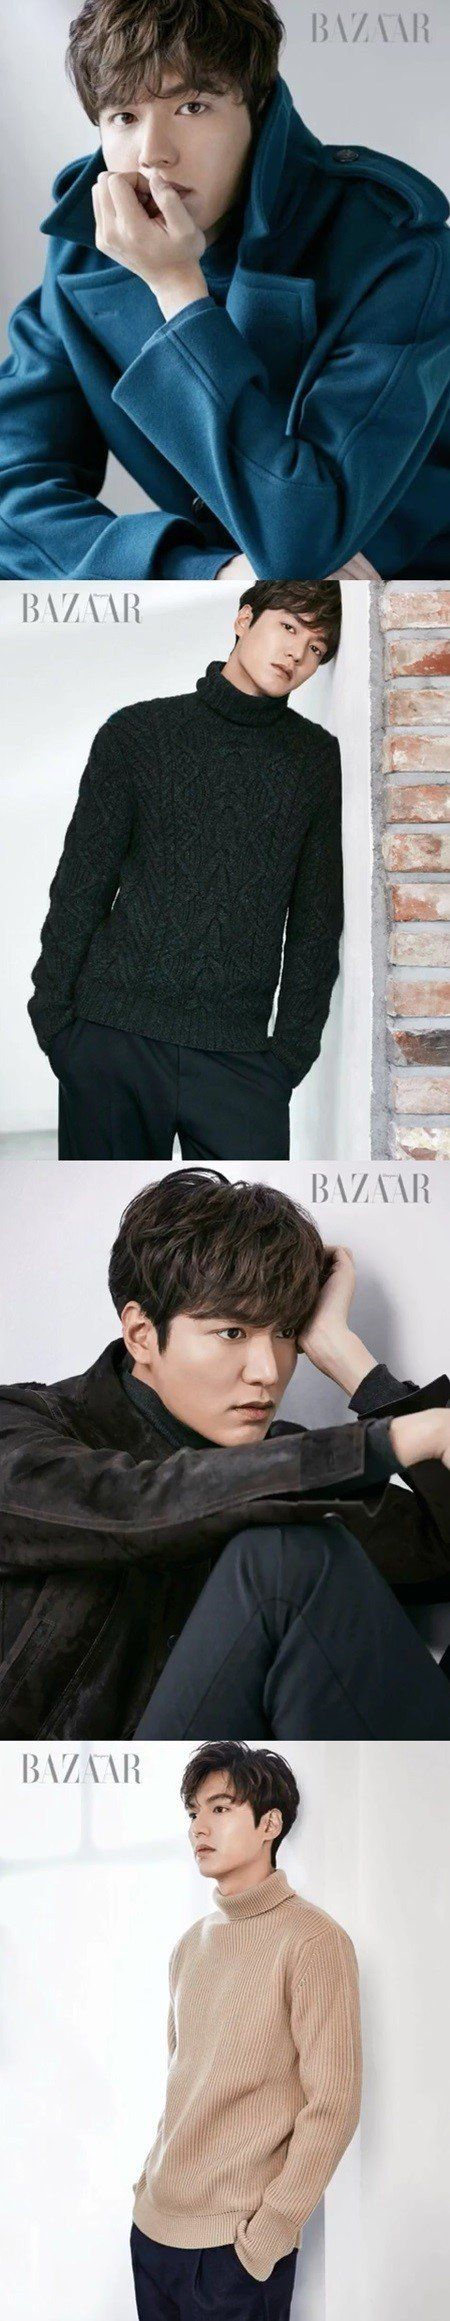 Lee Min Ho's perfect visuals shine even in b-cuts for 'Bazaar' | allkpop.com